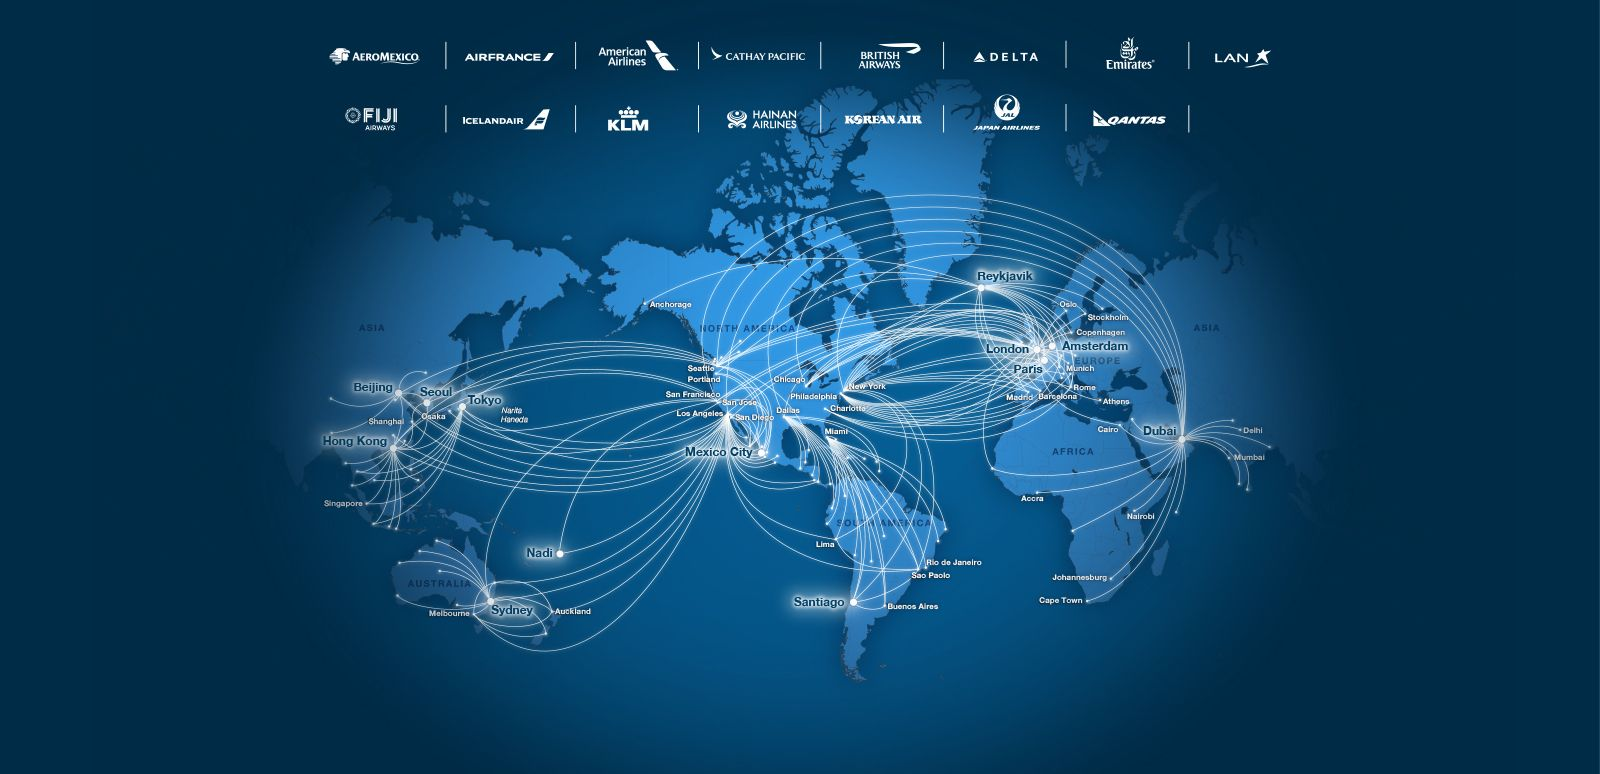 Alaska and Virgin partners route map: Aeromexico, airfrance ...